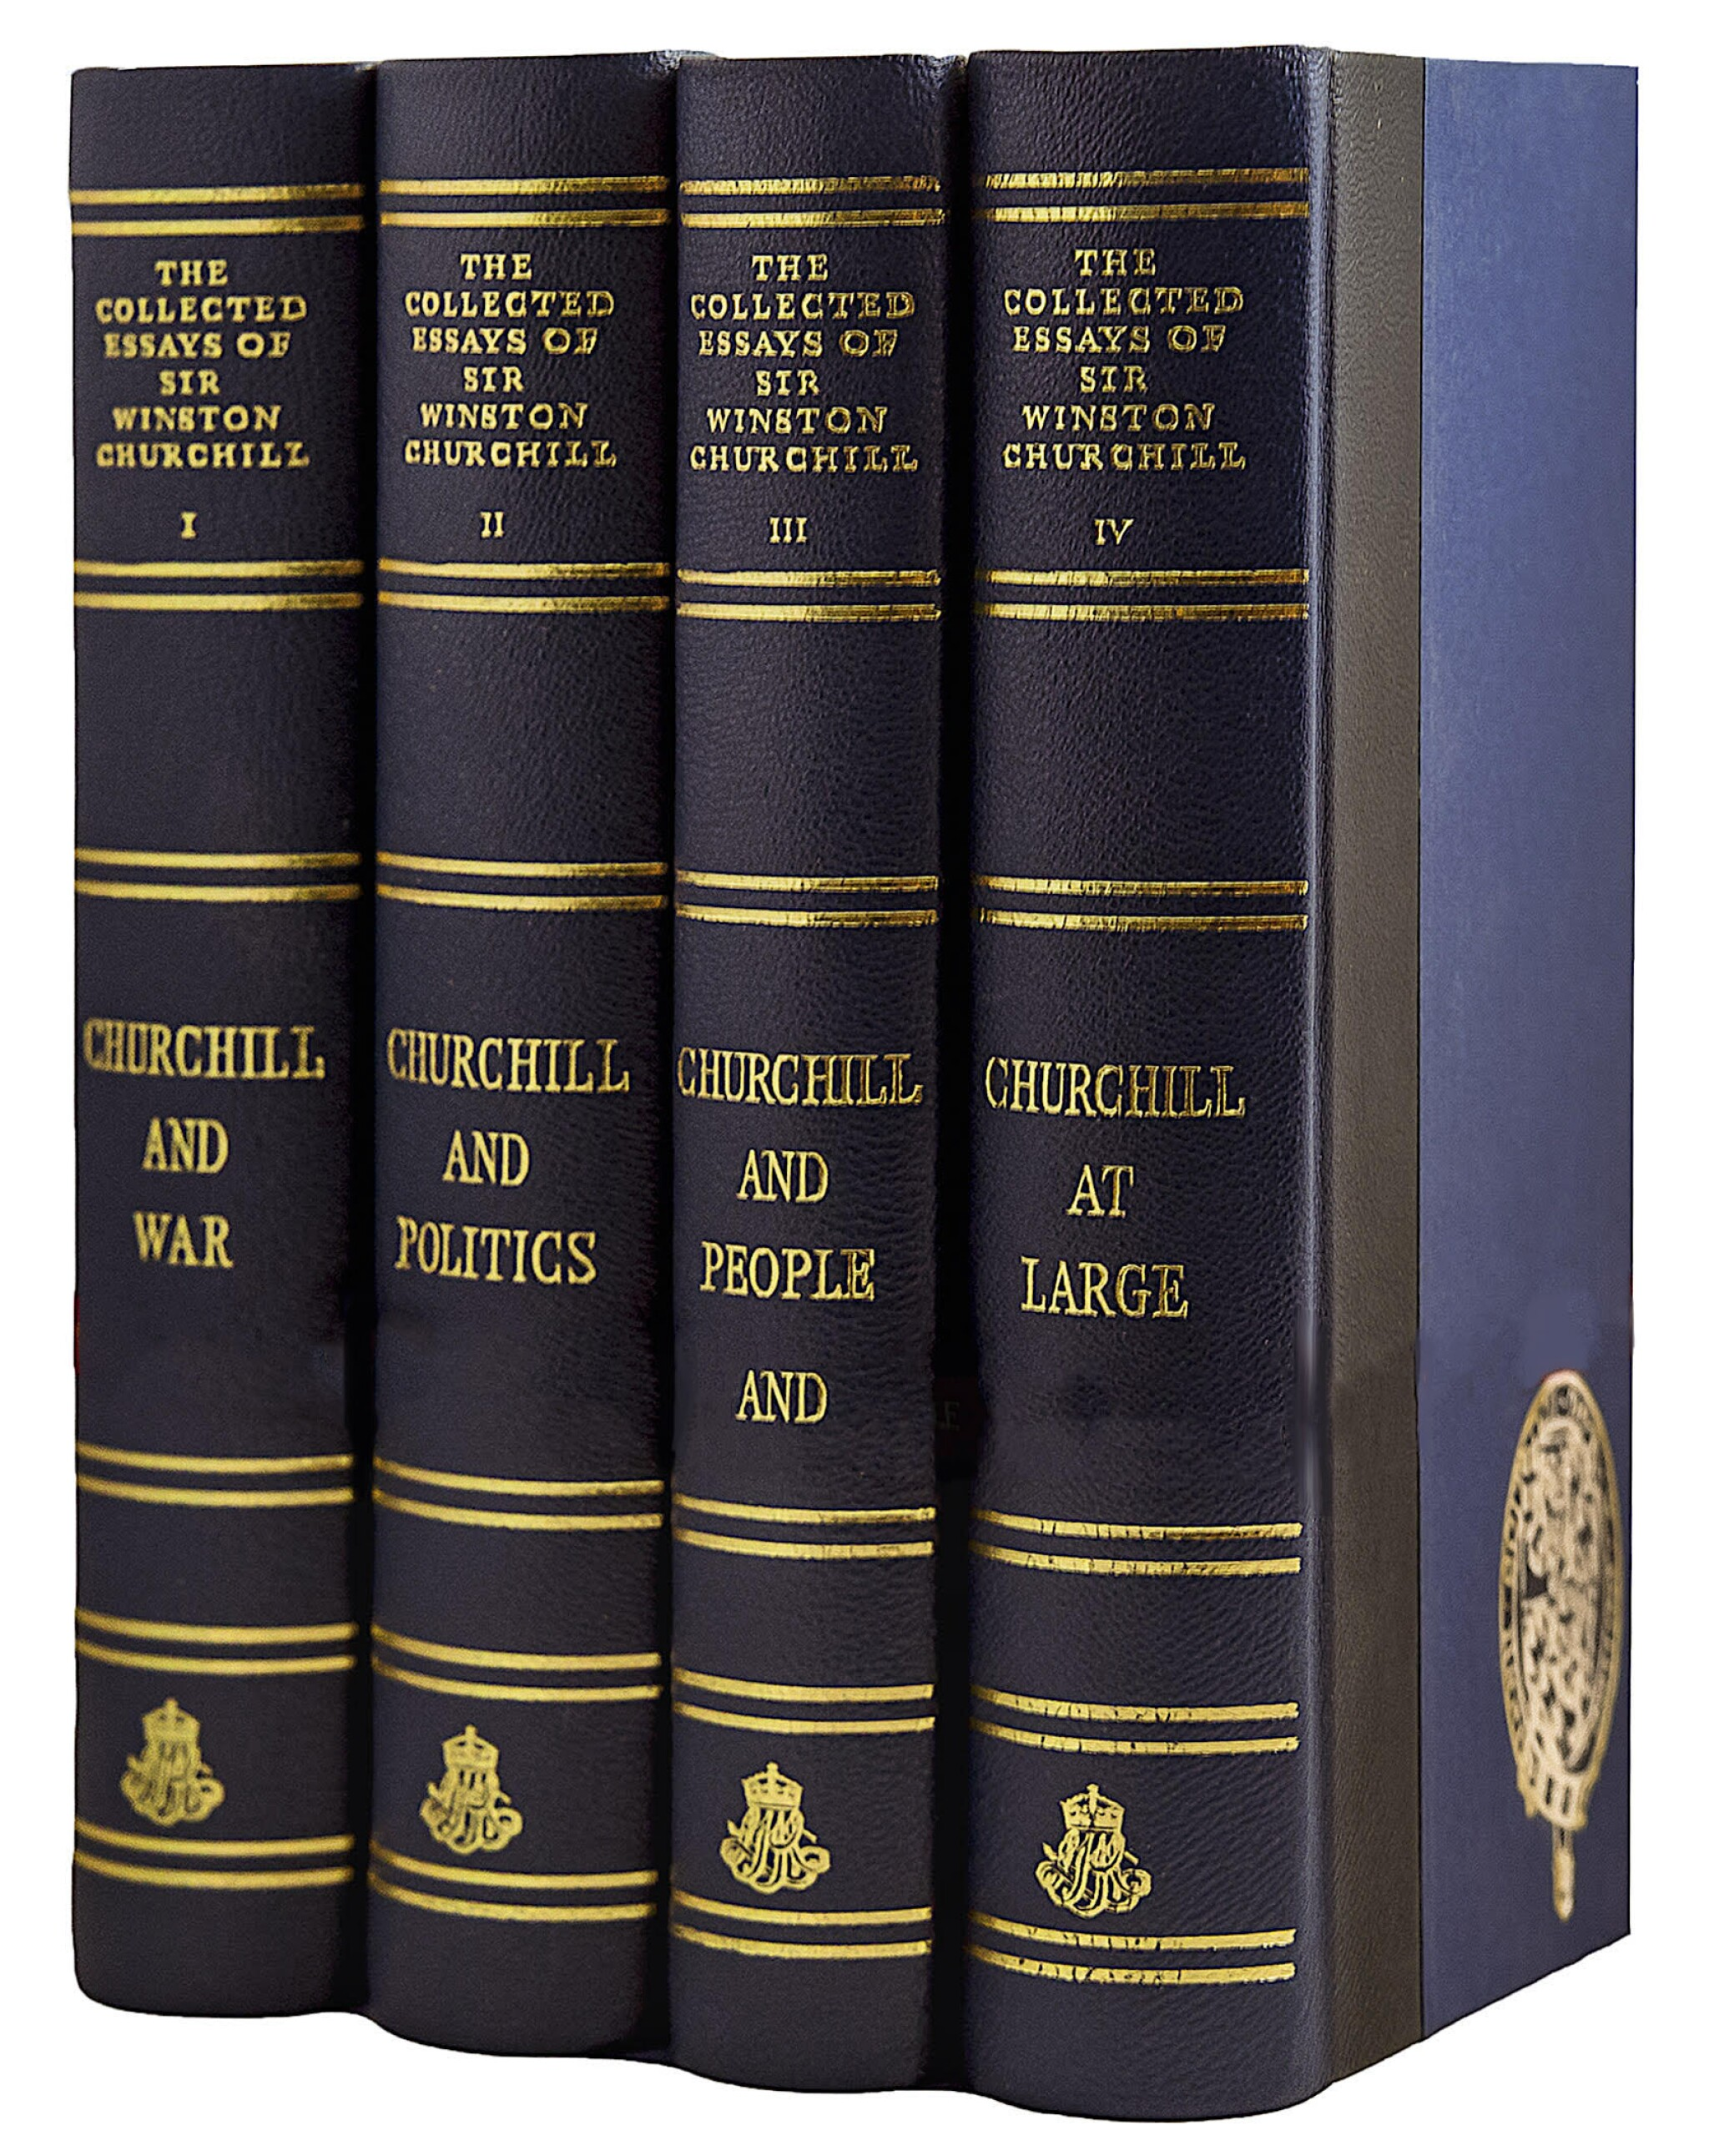 Winston S Churchill The Collected Essay Of Sir London Library Imperial History 1975 In Charge 80th Anniversary2020 Sotheby Essays